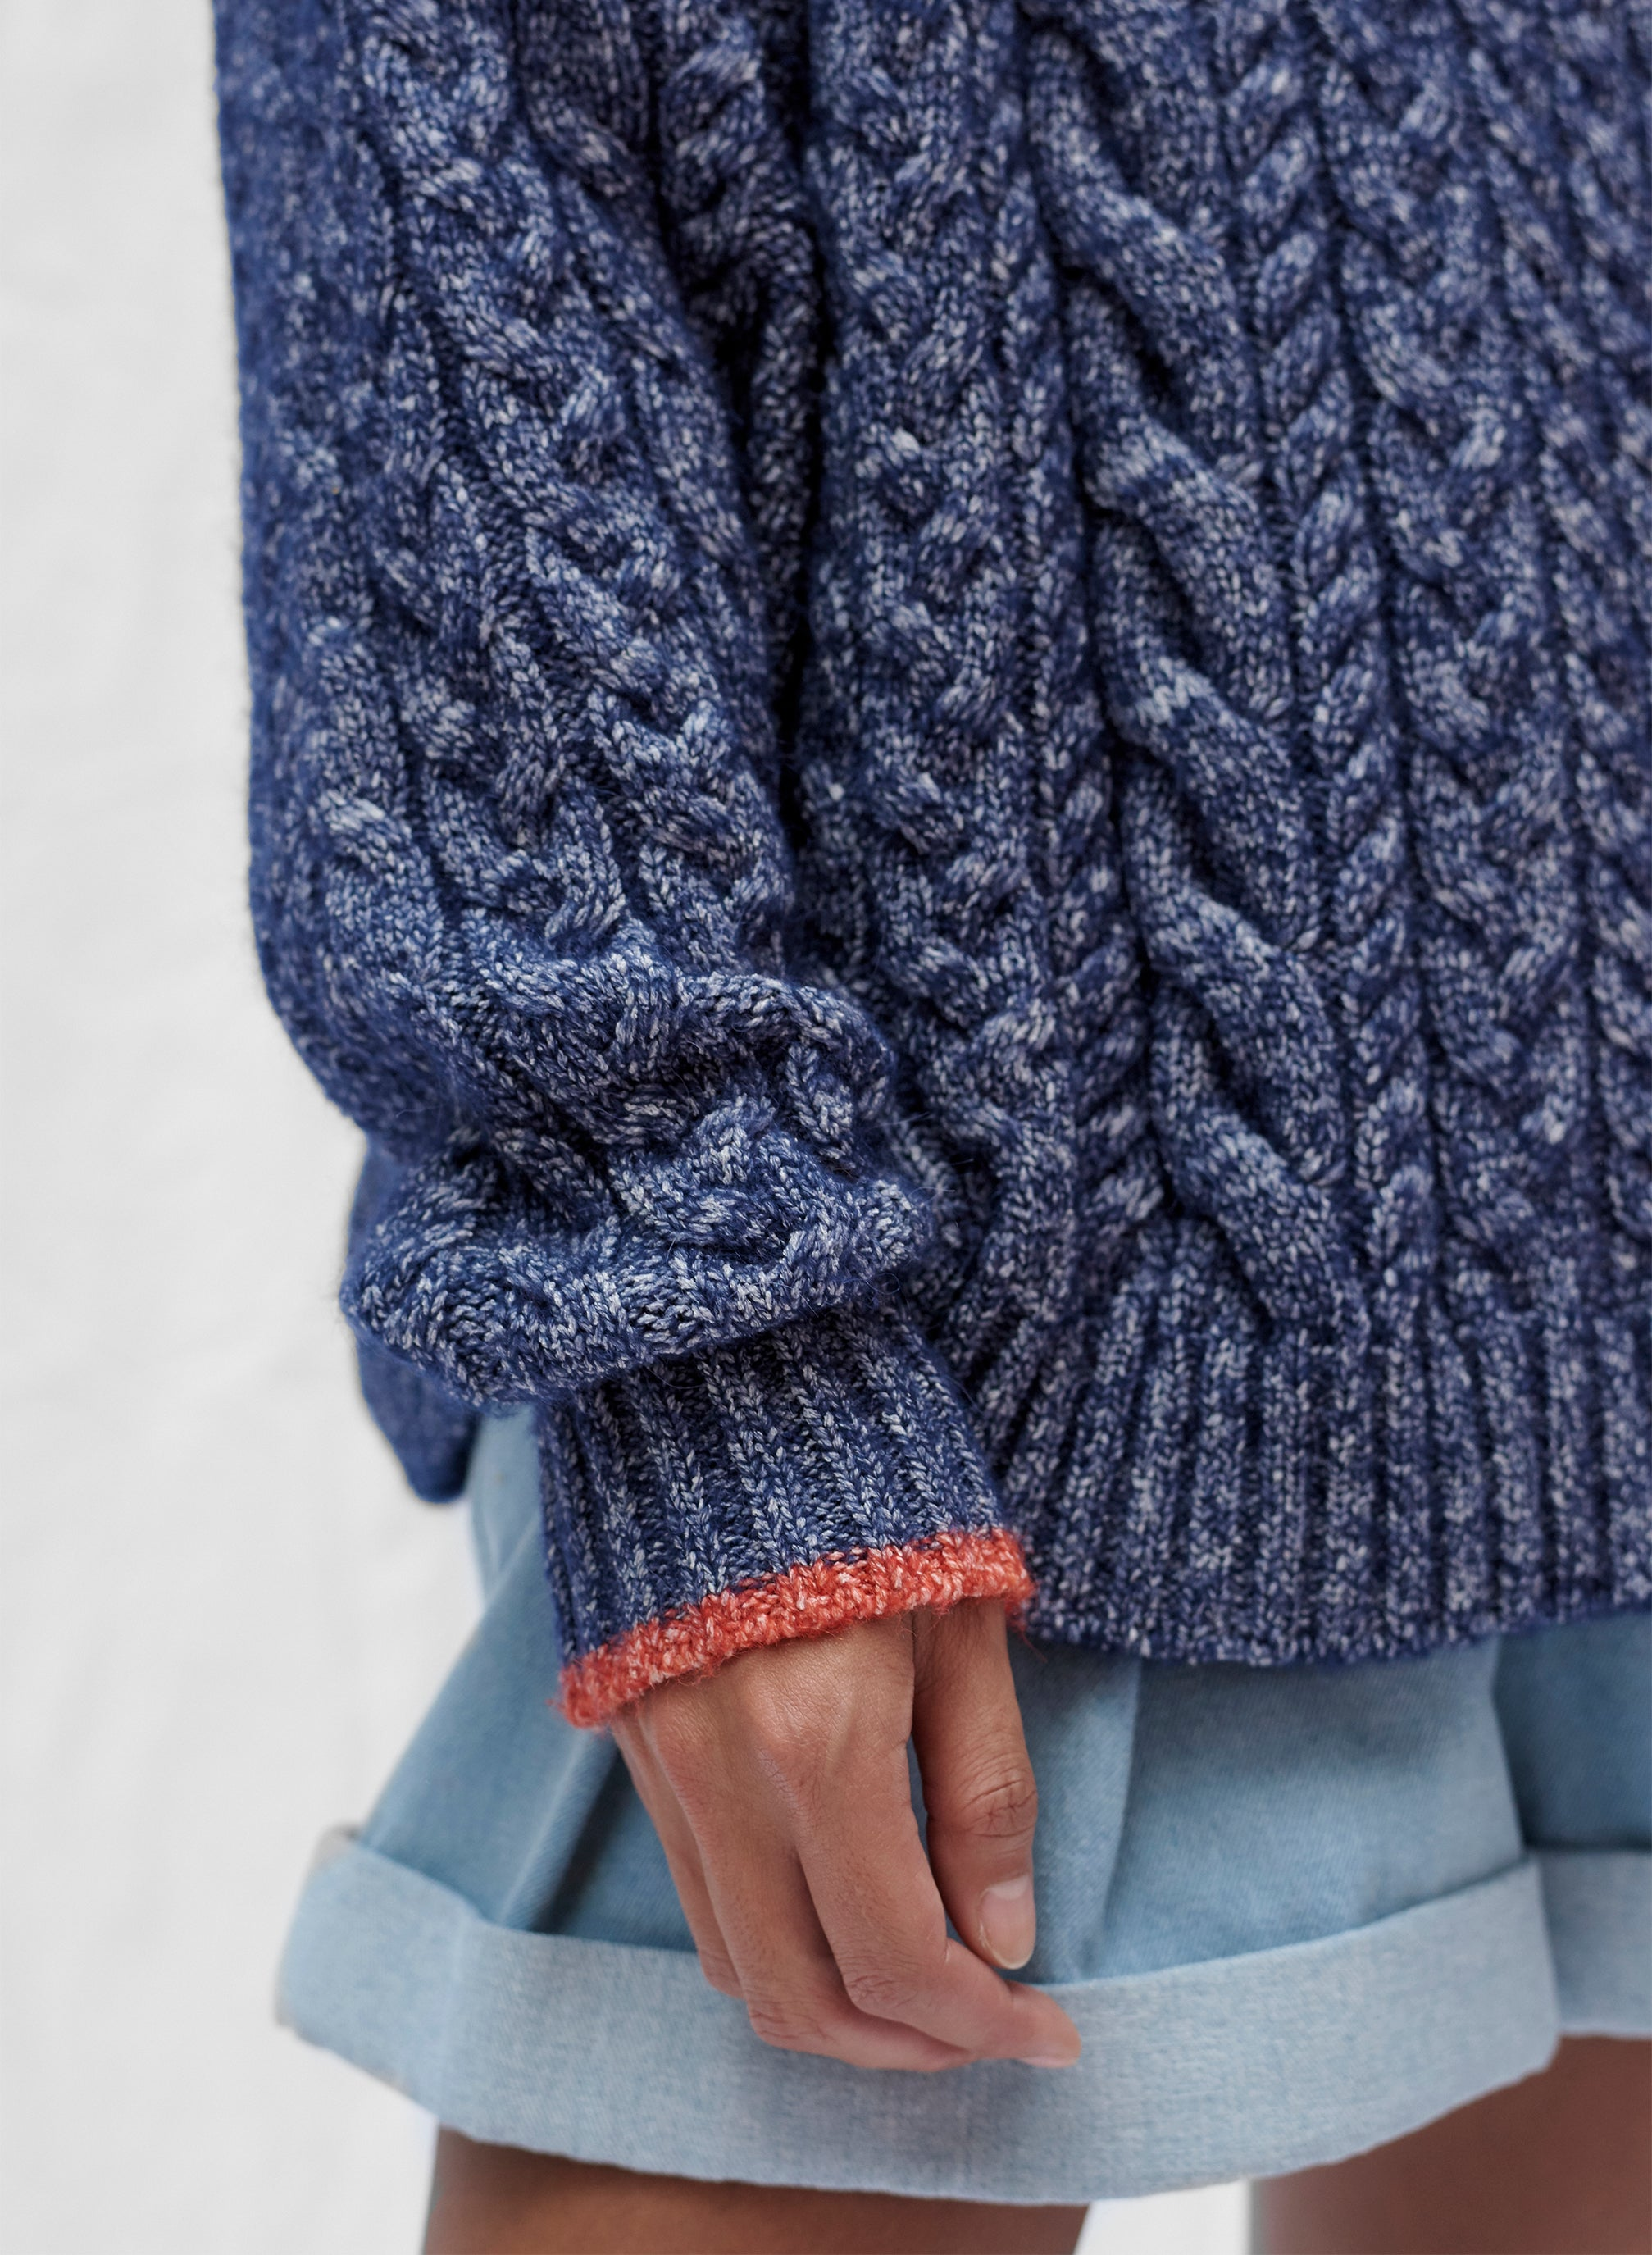 claudia li fall winter 2019 oversized cable knit sweater blue melange made in Italy